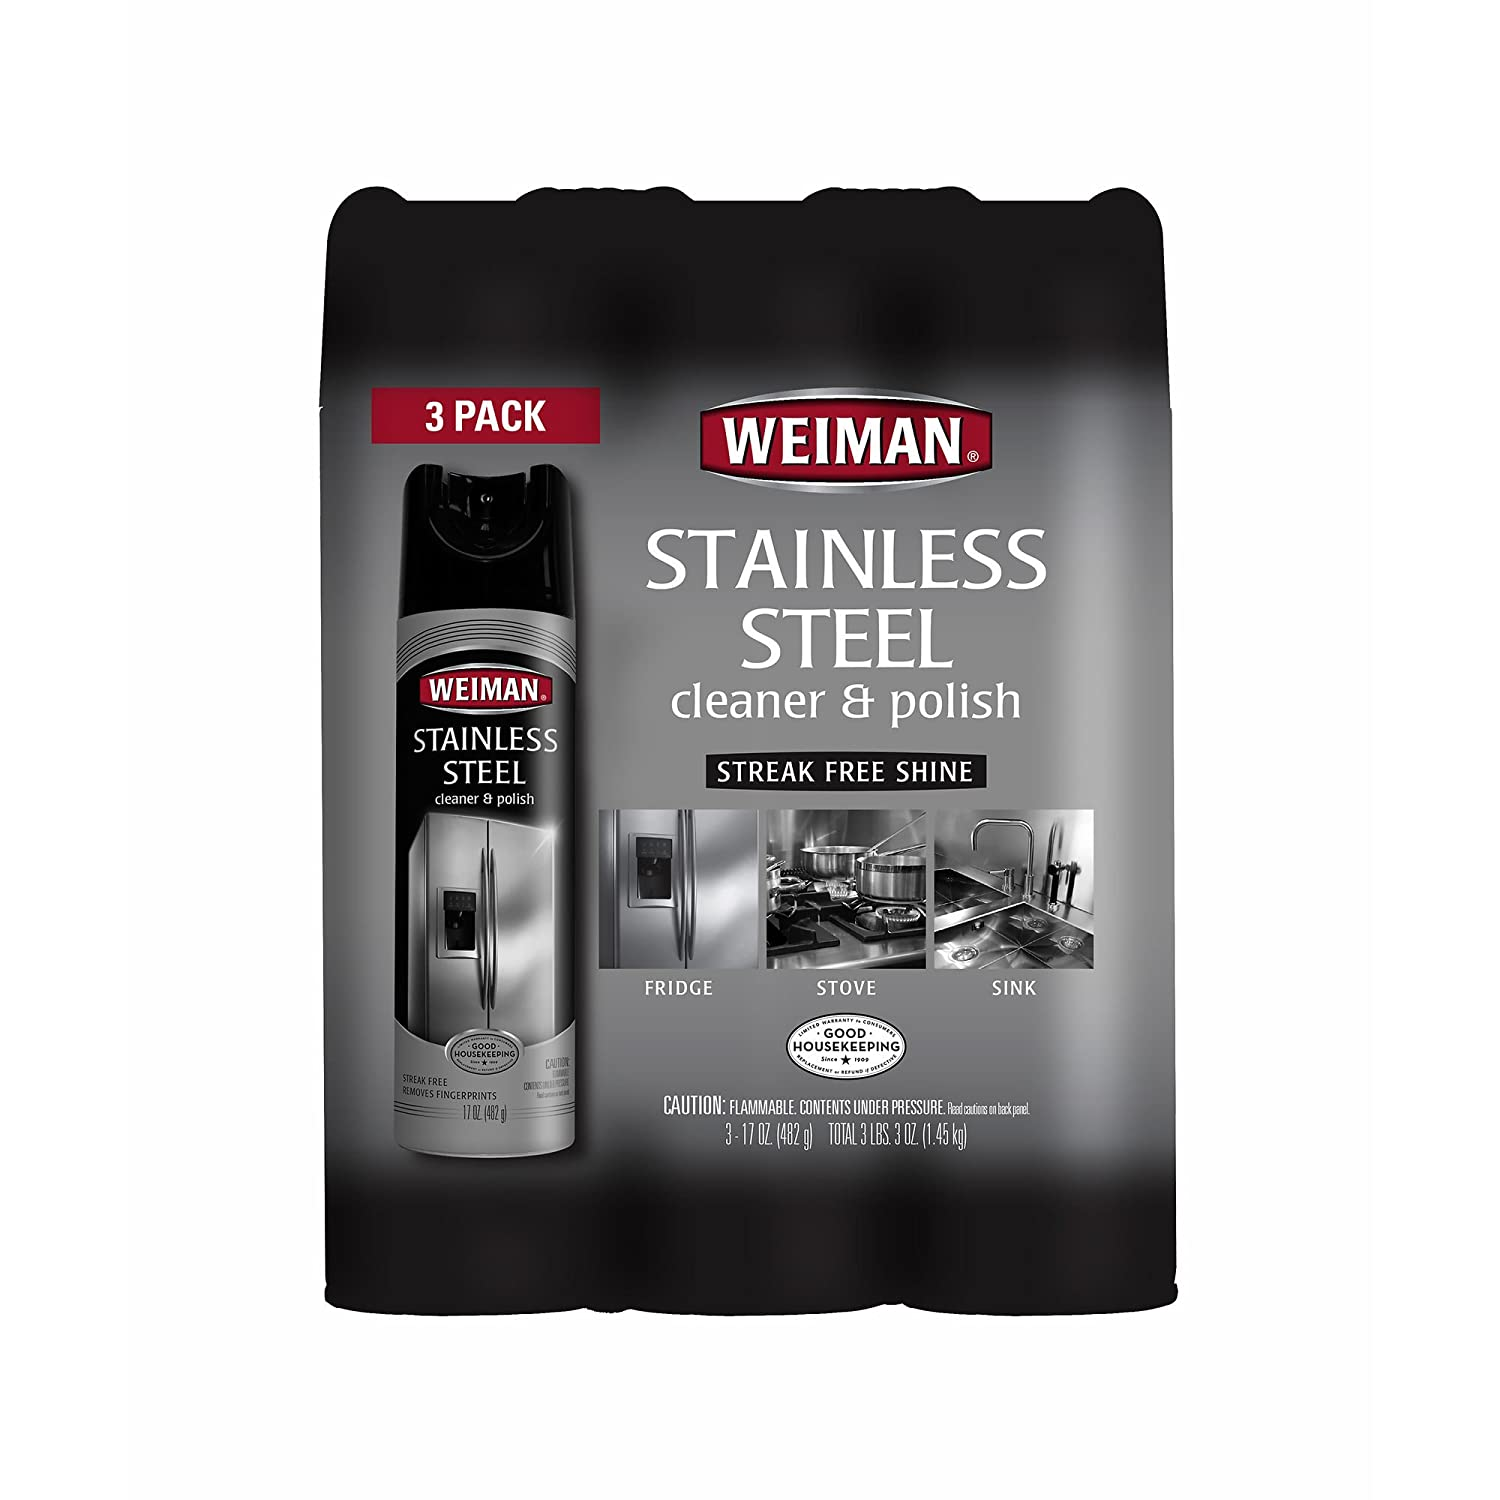 Weiman Stainless Steel Cleaner、3 PK。/17オンス B06W2LXLTT